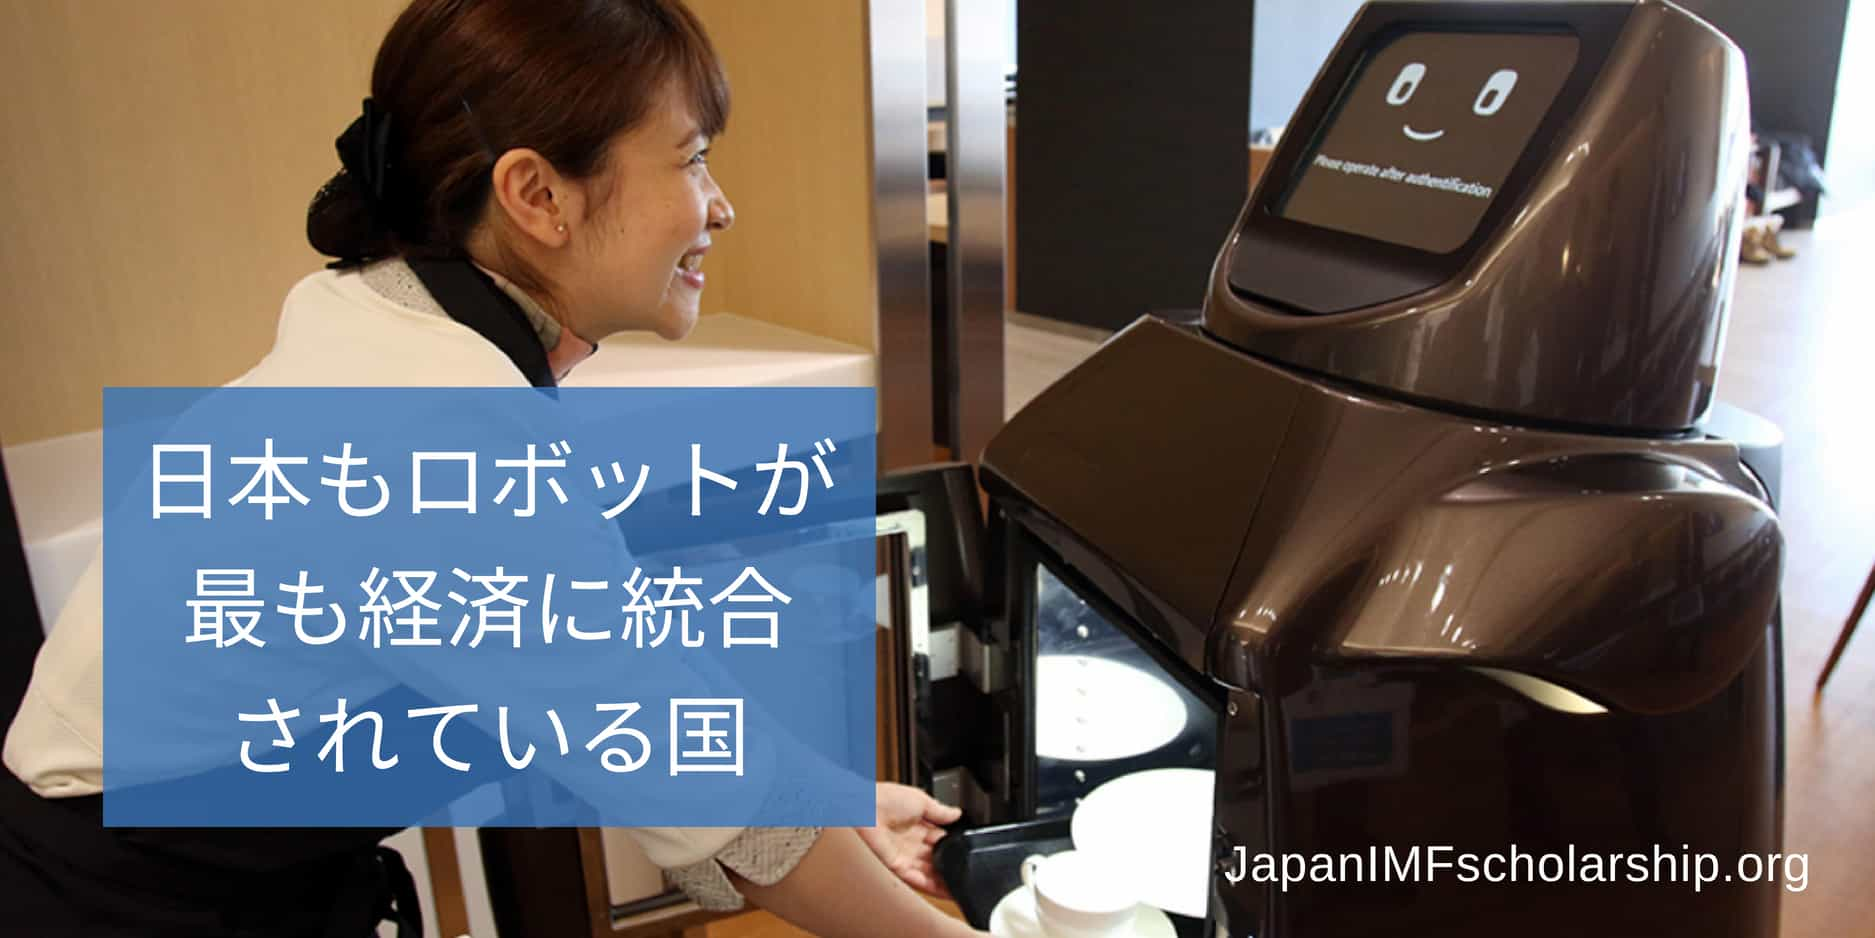 jisp web-fb imf blog - about japans robots in new finance and development magazine 6-2018